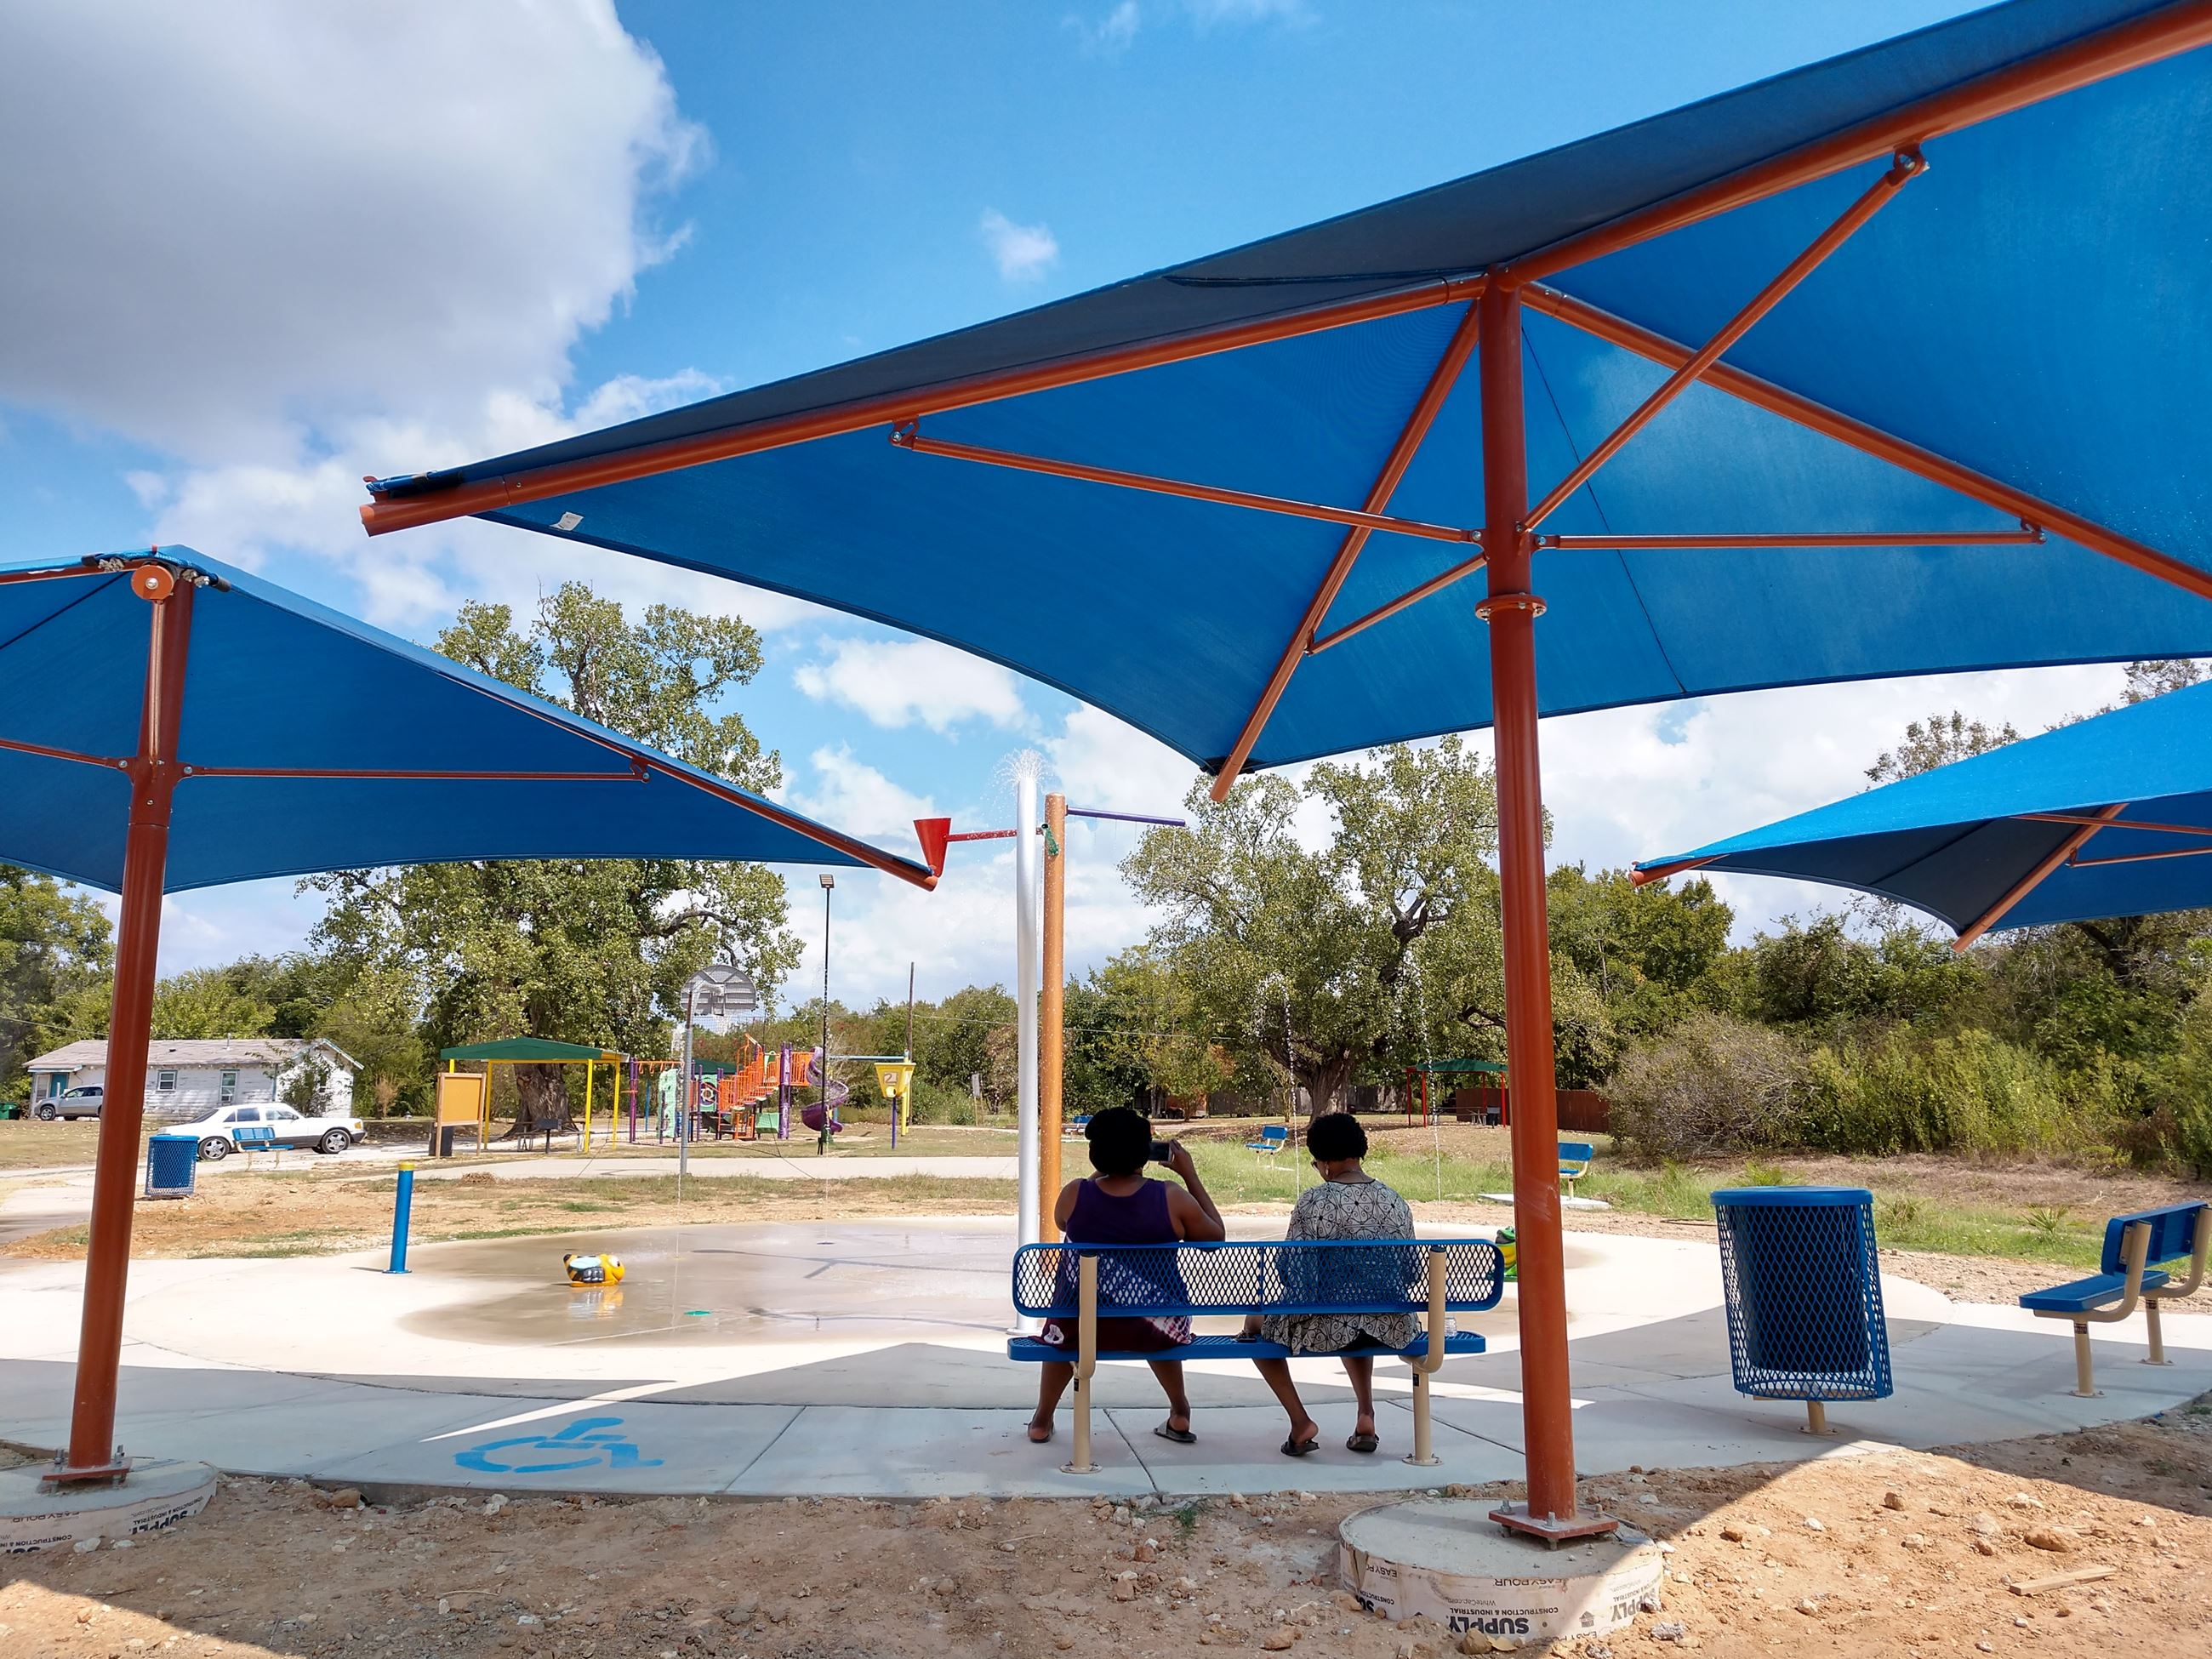 Shaded seating at Splash Pad